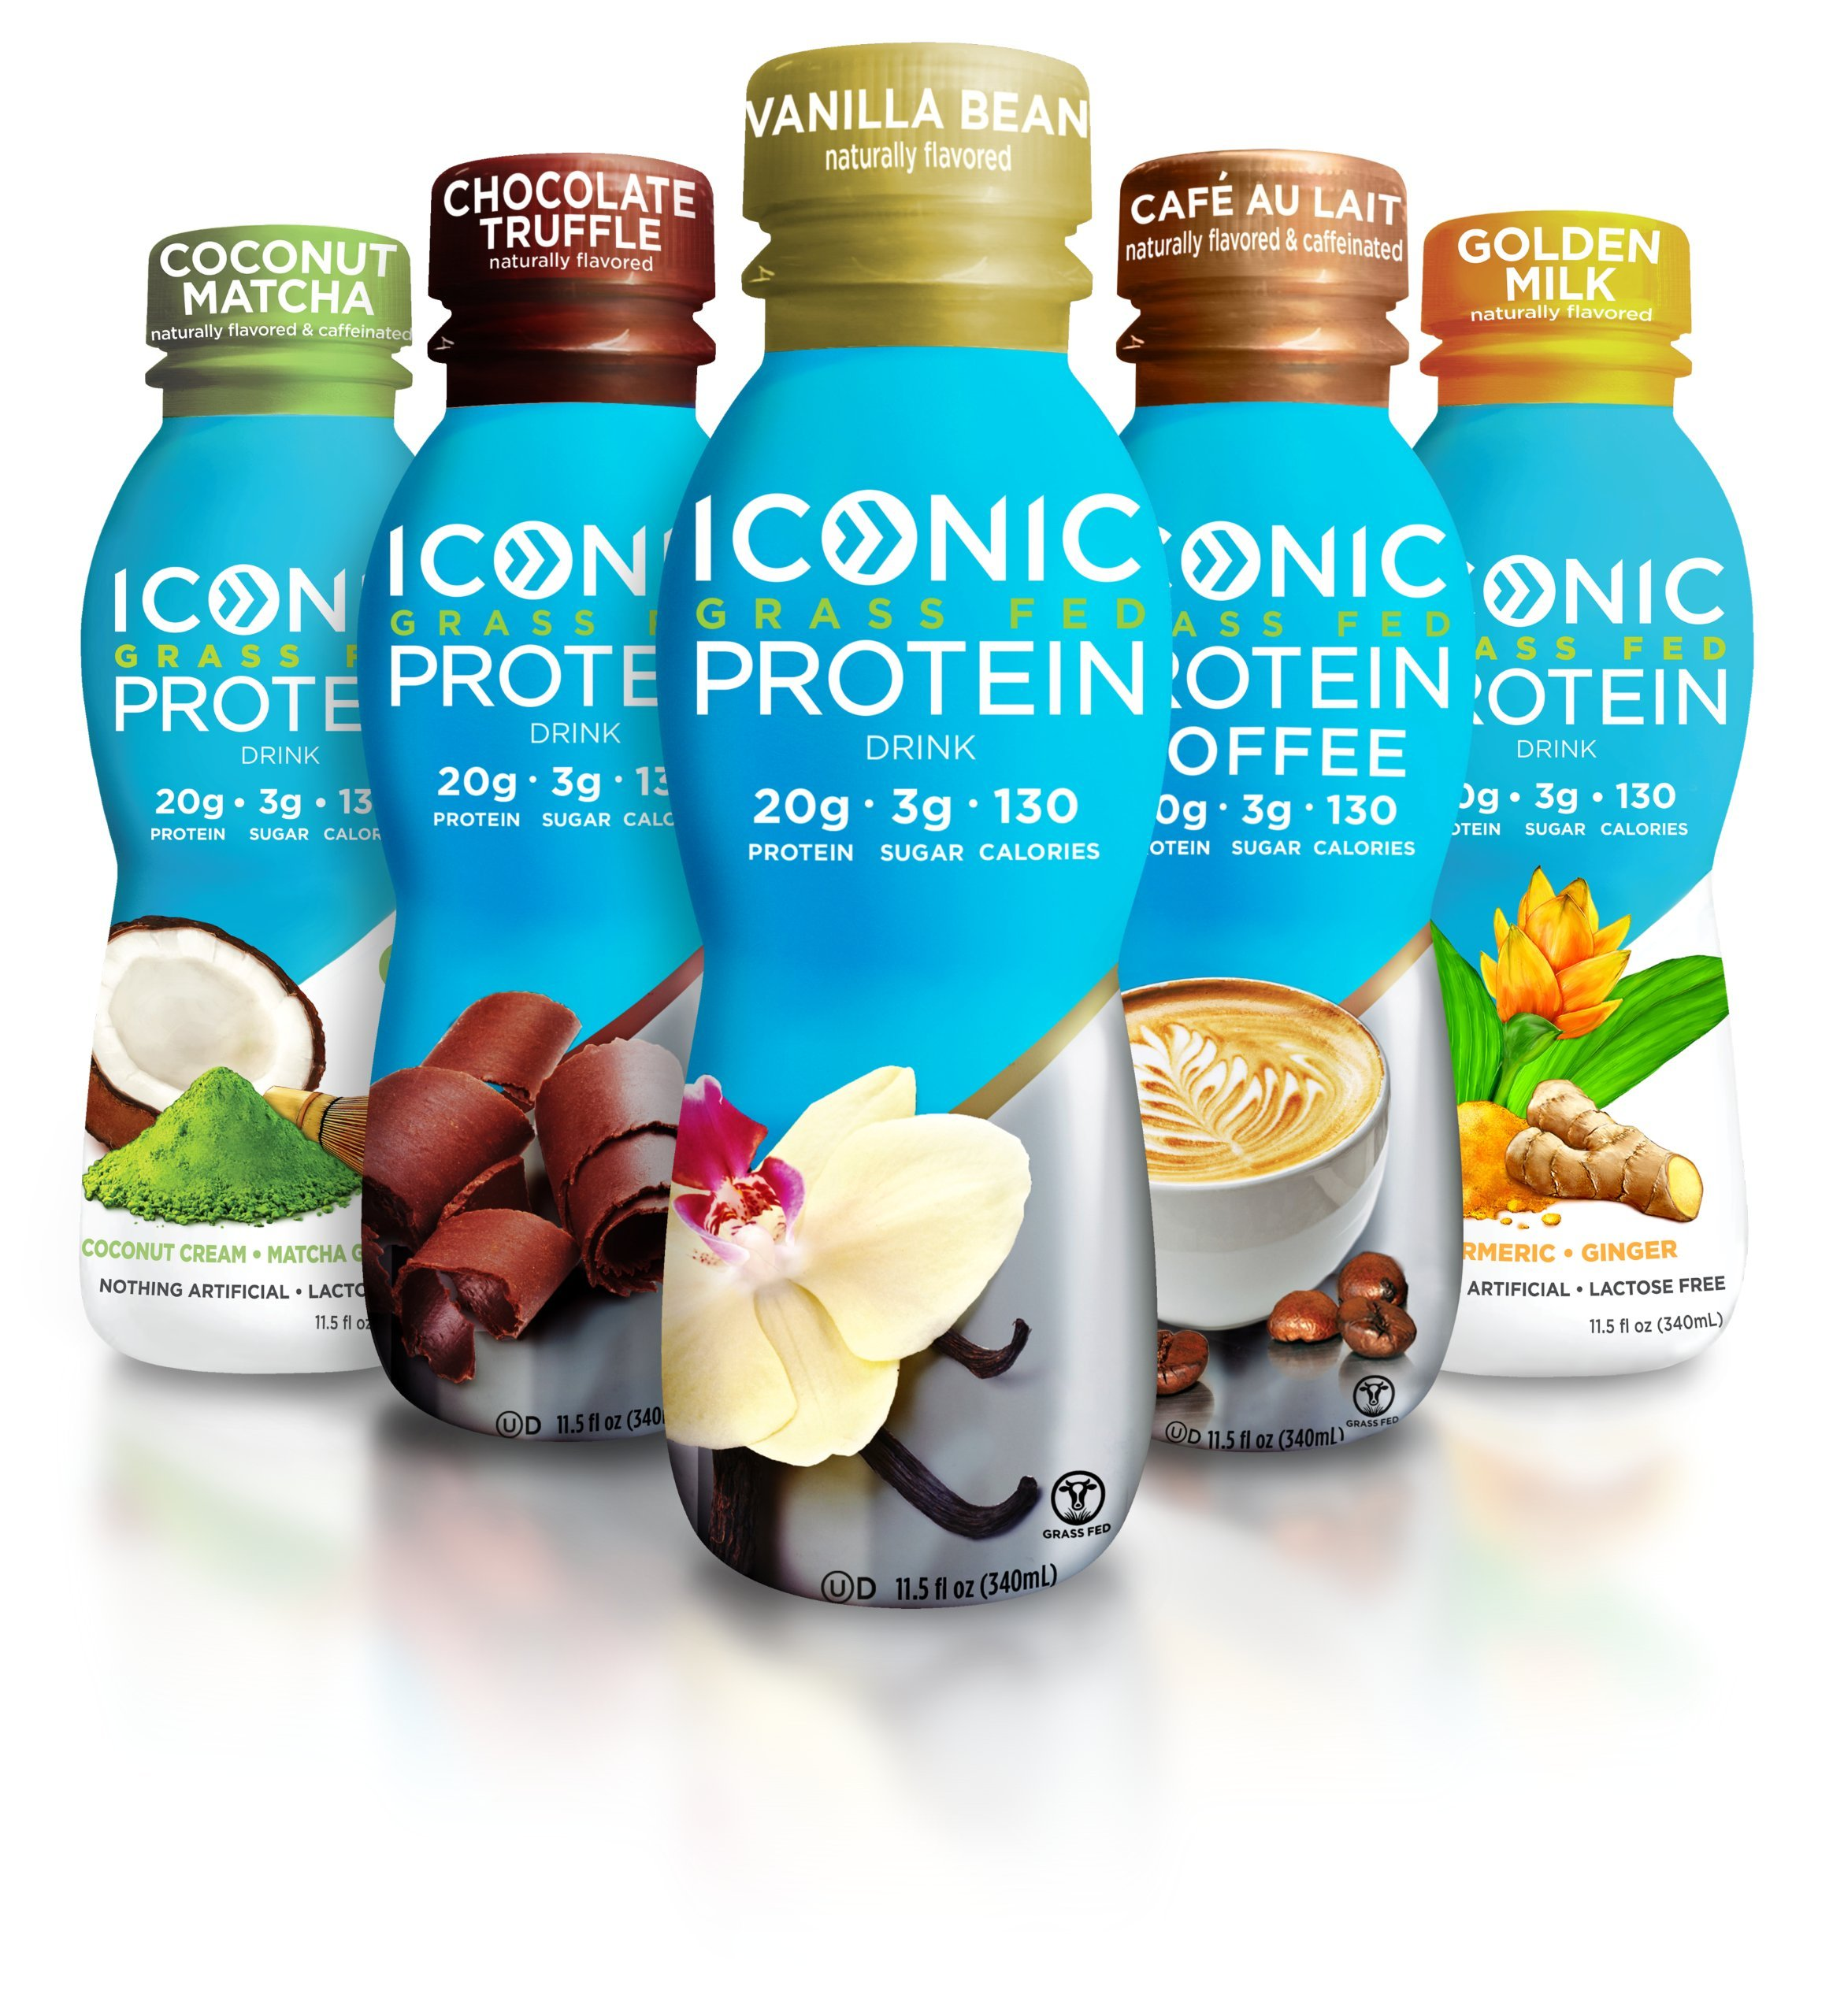 Iconic Grass Fed Protein Drink, Sample Pack (5 Flavors) | Healthy, Natural Clean Protein Shake | Perfect Snack for Breakfast, Post Workout Muscle Recovery, Light Meal Replacement | Paleo Friendly by ICONIC